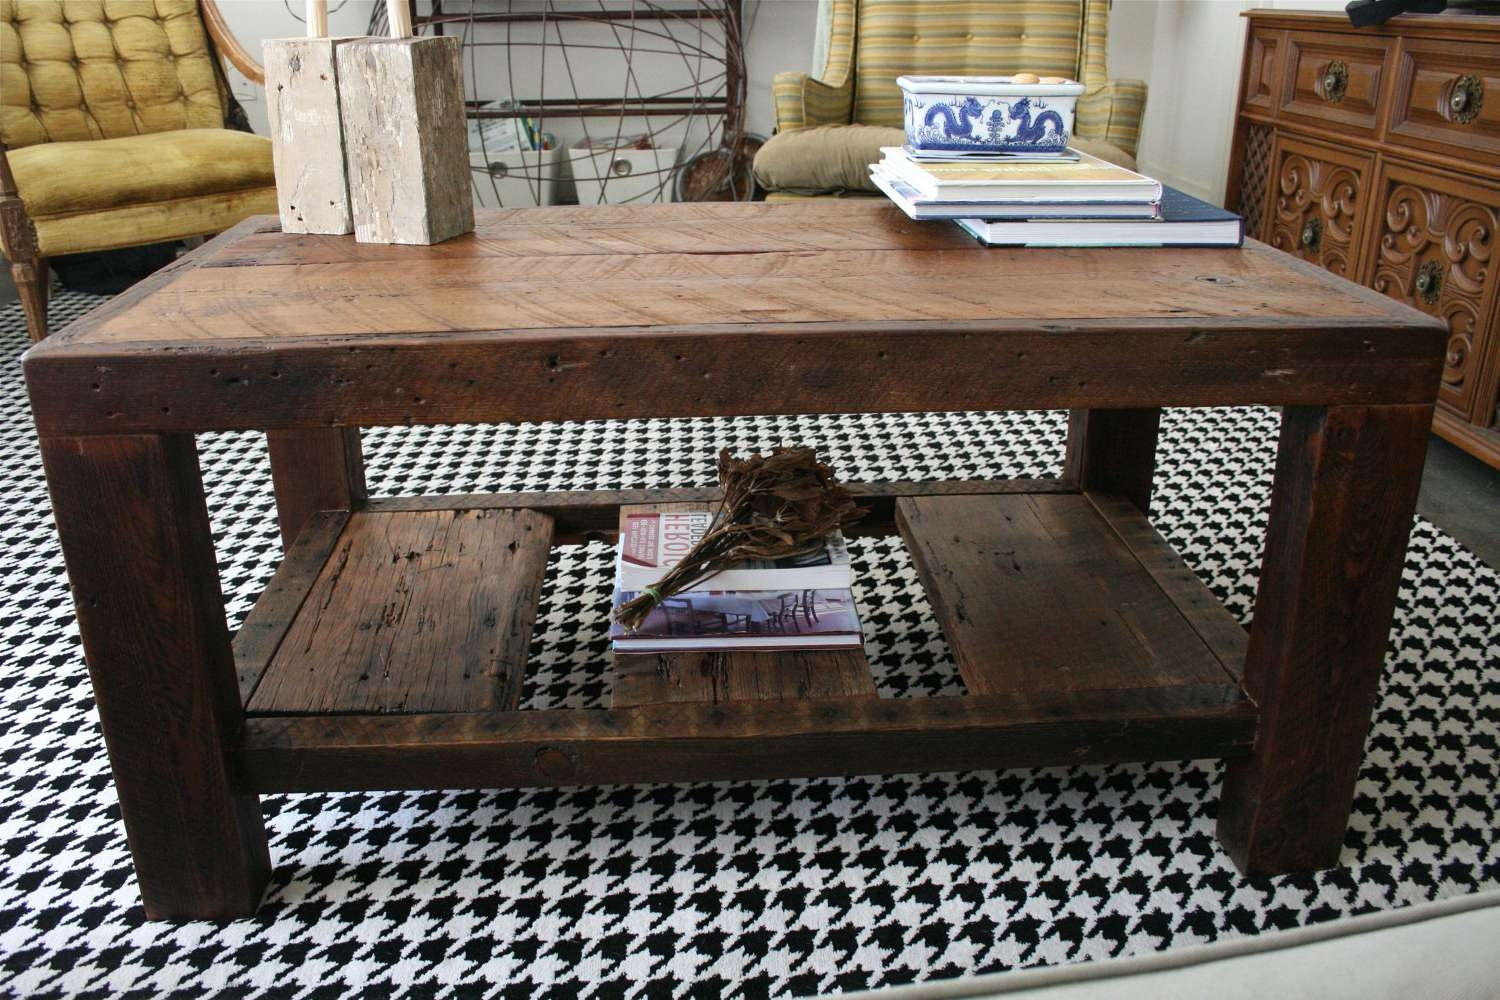 Rustic Coffee Tables In Well Known Rustic Coffee Tables With Bottom Shelf (View 12 of 20)